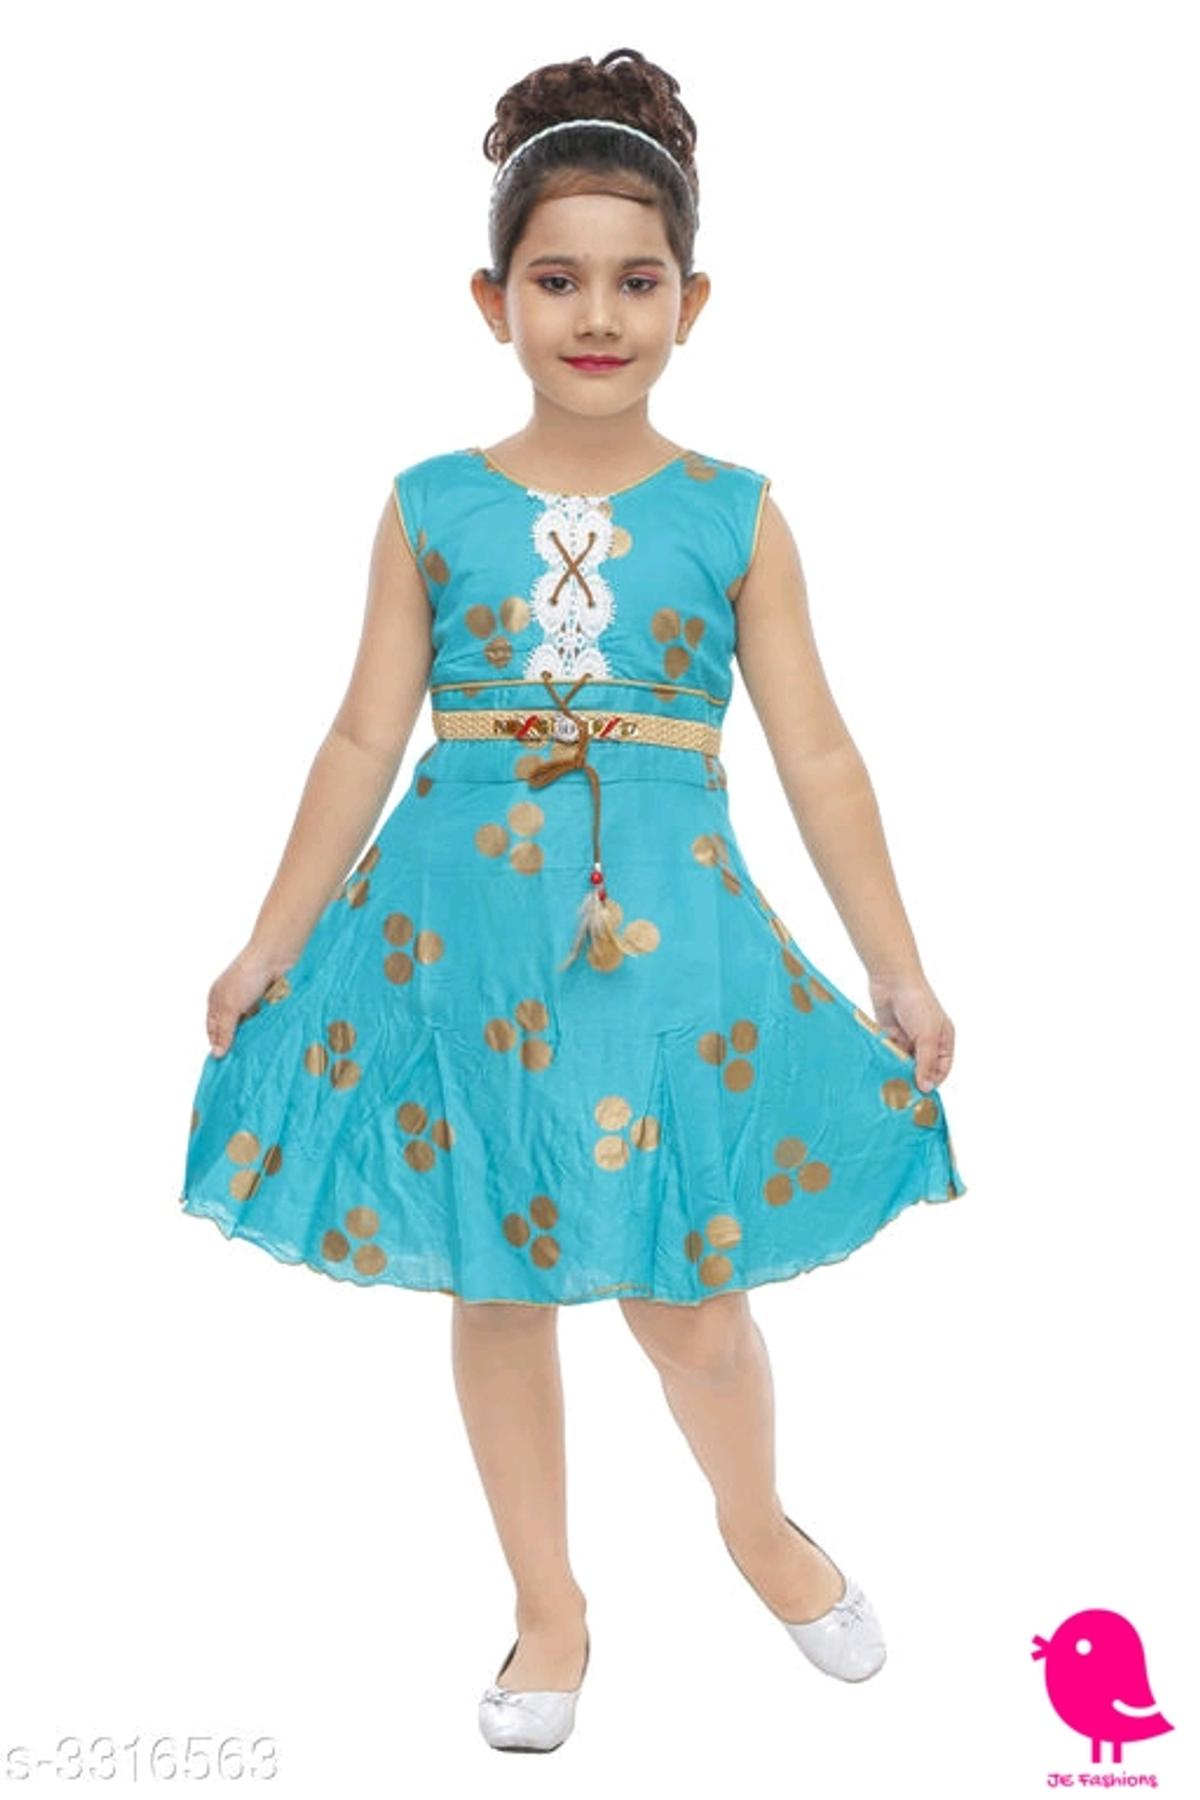 *Cuteness Elegant Girl's Frocks*  Fabric: Cotton Rayon Mix  Sleeves: Sleeves Are Not Included  Size: Age Group (1 - 2 Years) - 20 in  Age Group (2 - 3 Years) - 22 in  Age Group (3 - 4 Years) - 24 in  Age Group (4 - 5 Years) - 26 in  Age Group (5 - 6 Years) - 28 in  Age Group (6 - 7 Years) - 30 in  Type: Stitched  Description: It Has 1 Piece Of Girl's Frock  Work: Printed  MRP Rs. 700/-  Offer Price Rs. 333/-  CASH on DELIVERY  ALL OVER INDIA free HOME DELIVERY  Easy Returns Available in Case